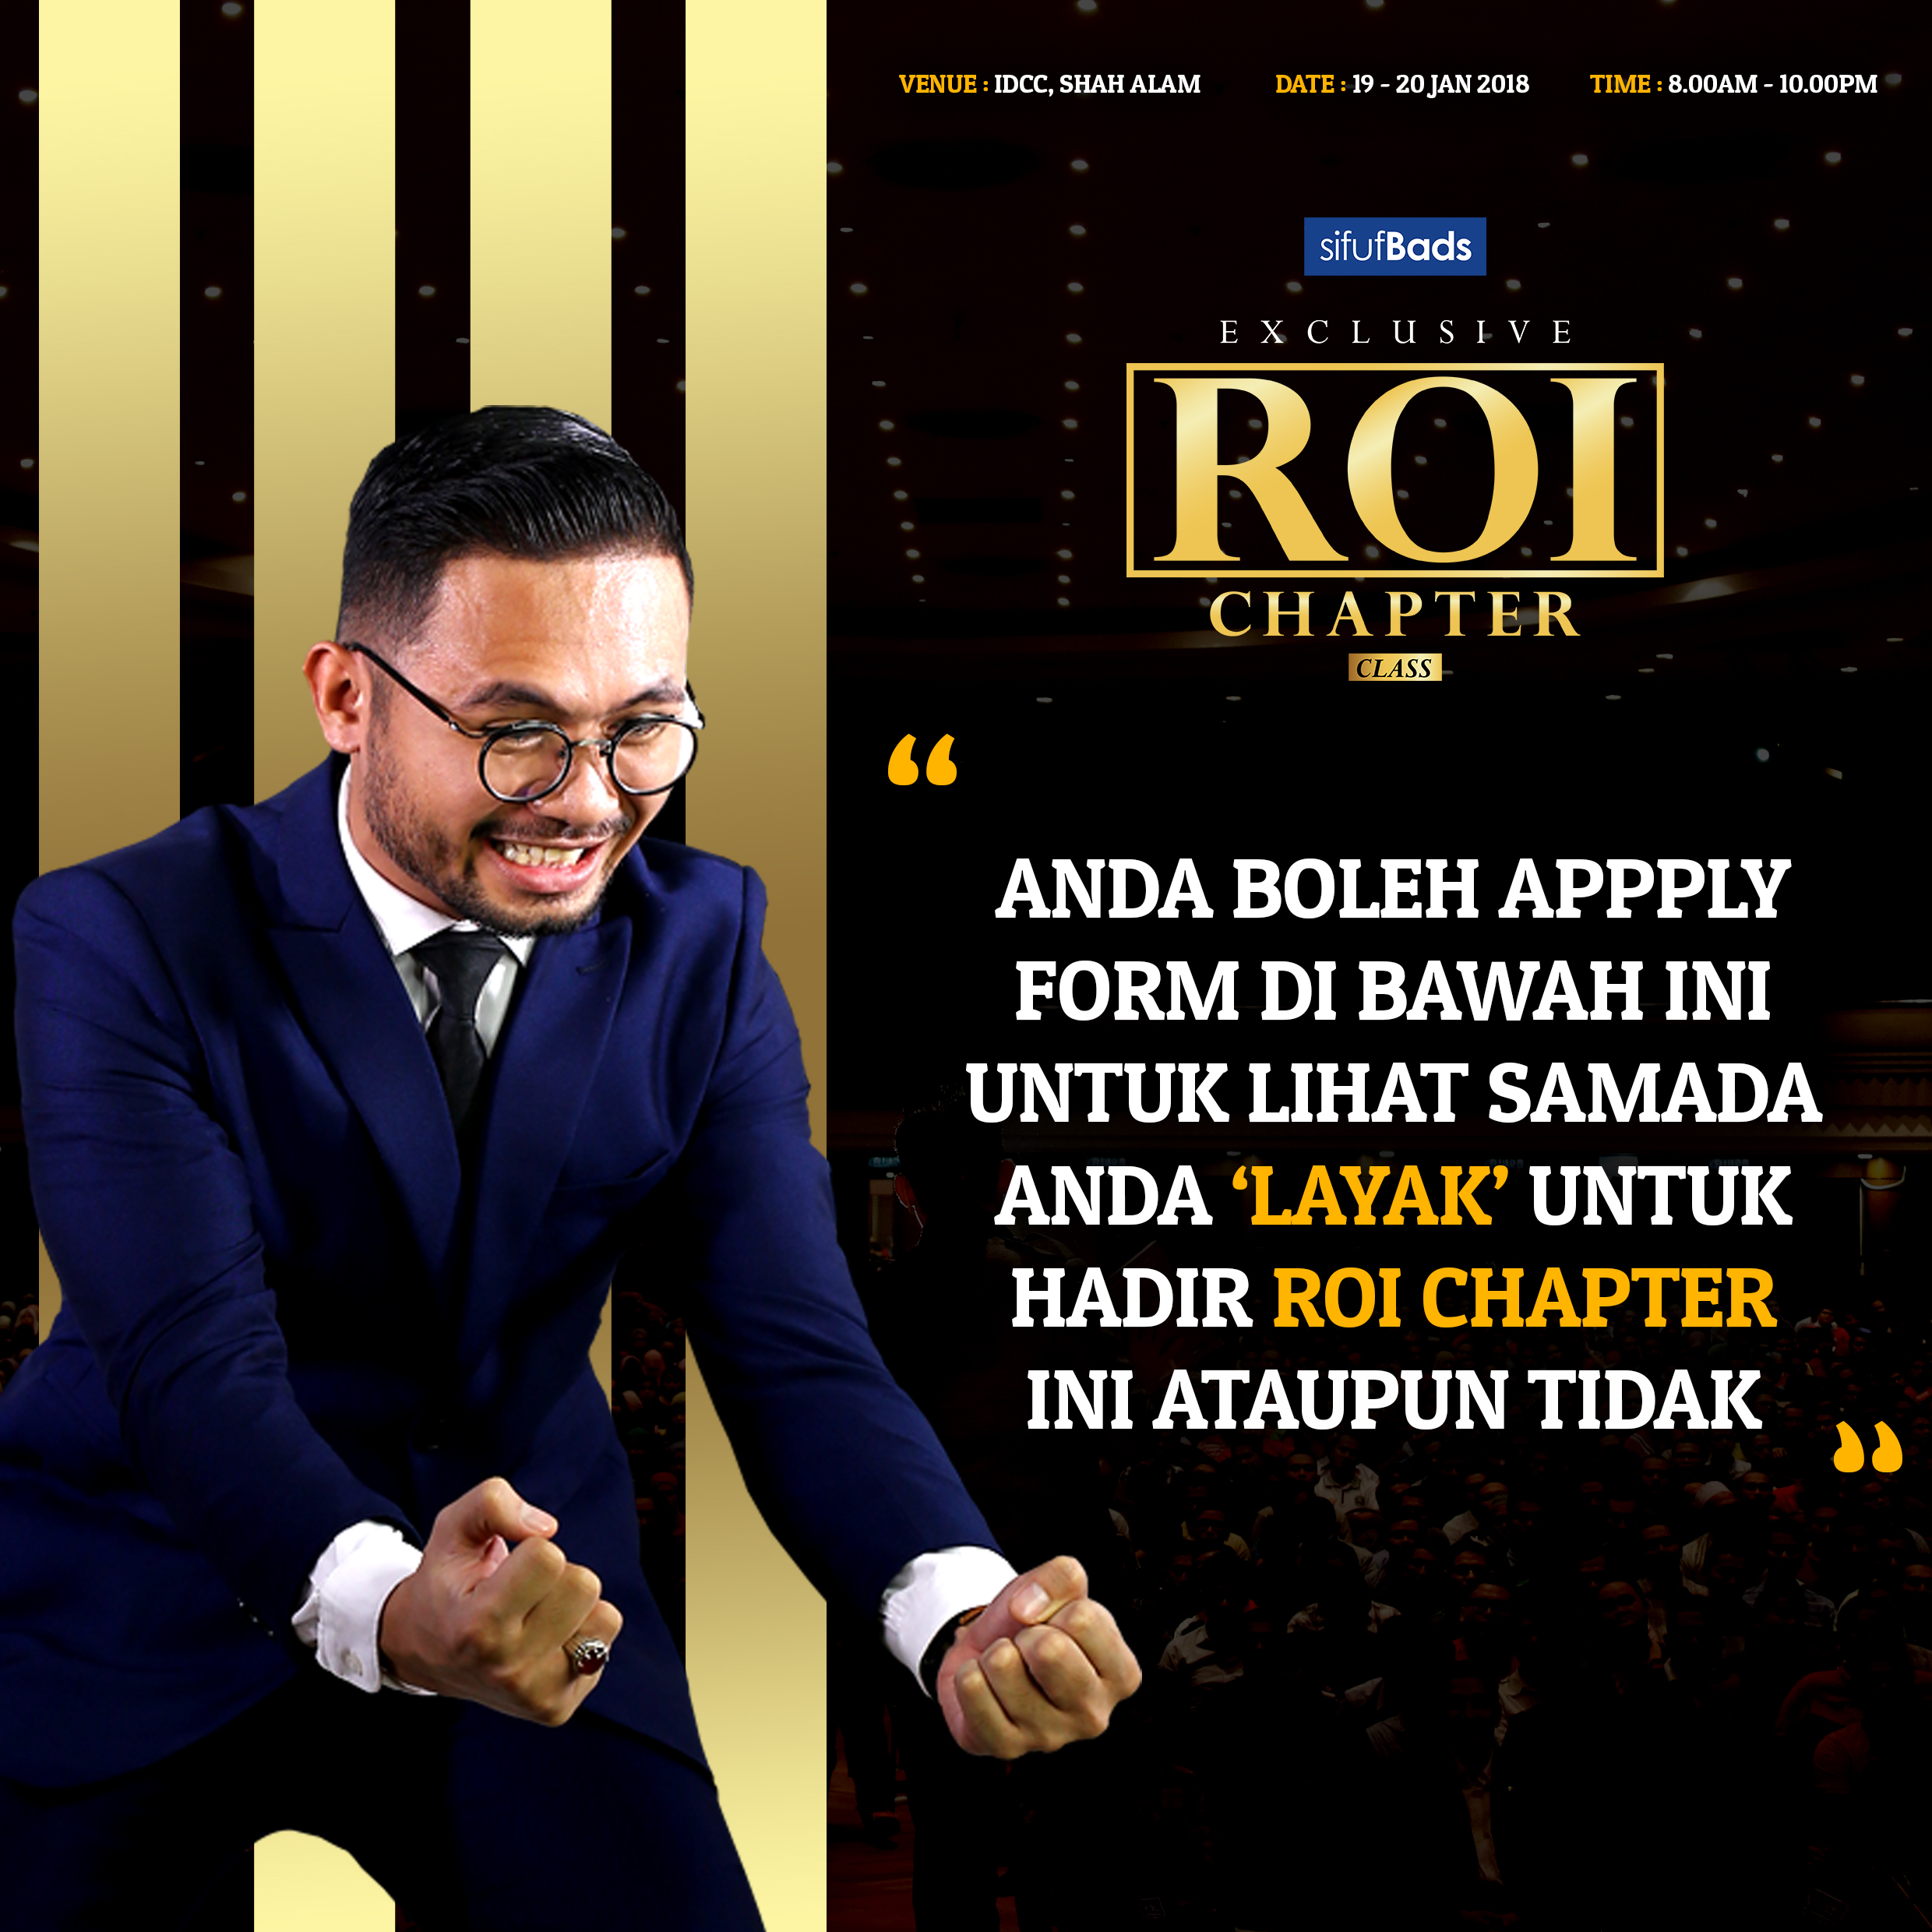 ROI Chapter